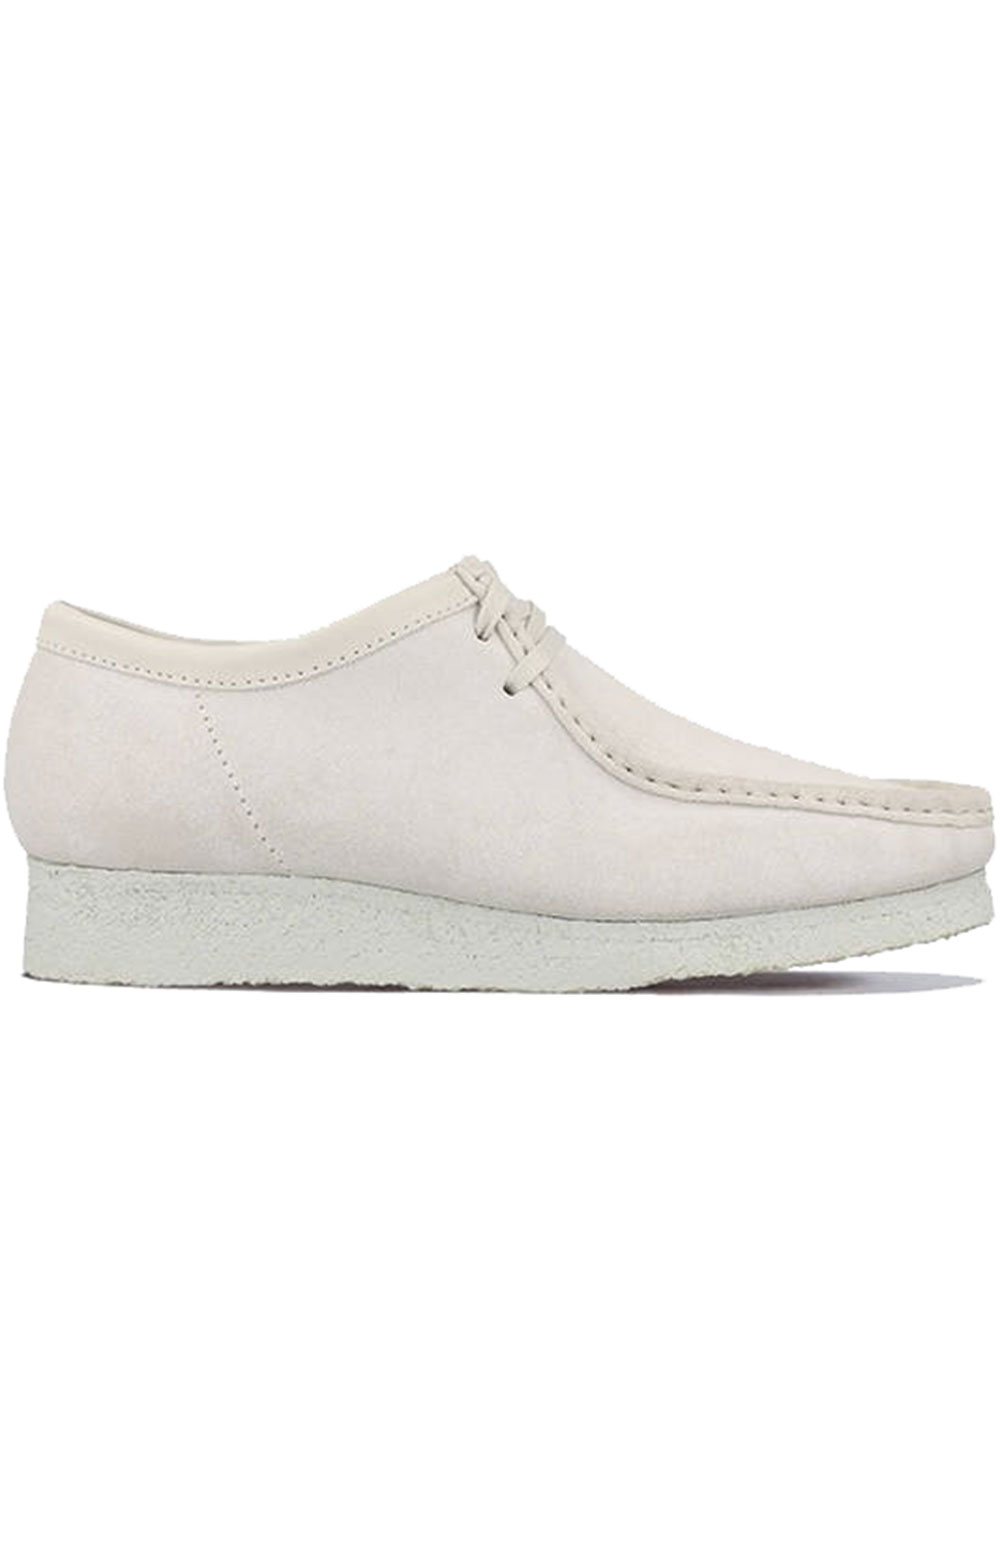 (26158421) Wallabee Shoes - White Suede